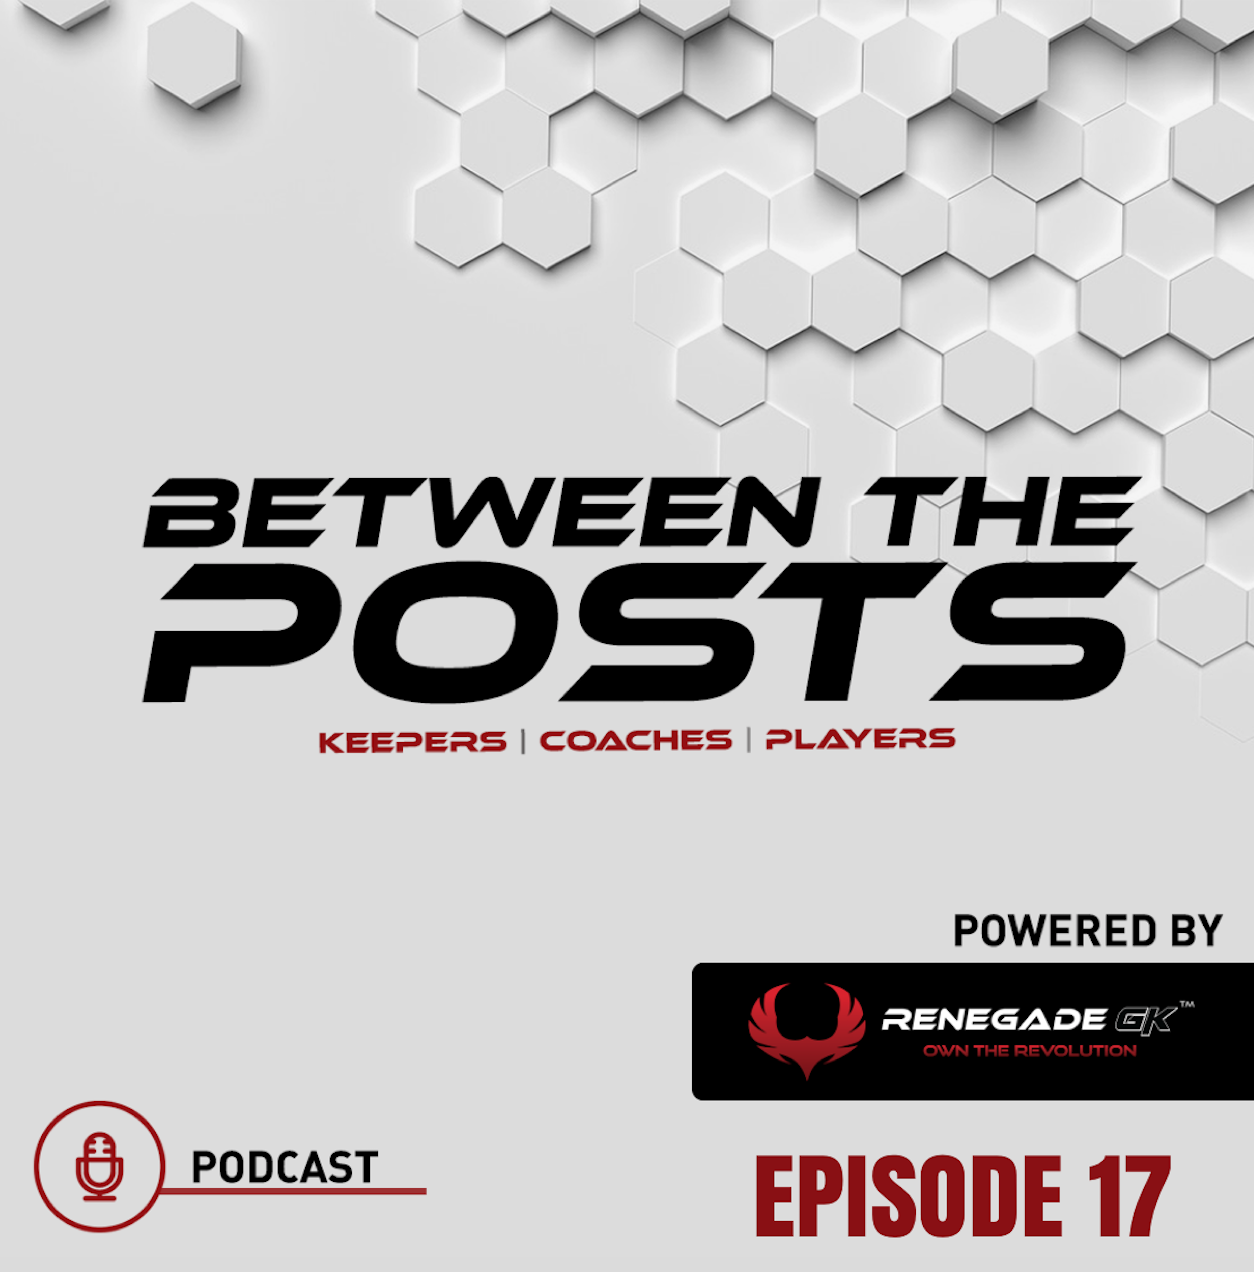 Between The Posts Ep. 17: The Biggest Myth In Goalkeeping | Will This Myth Be Busted? |